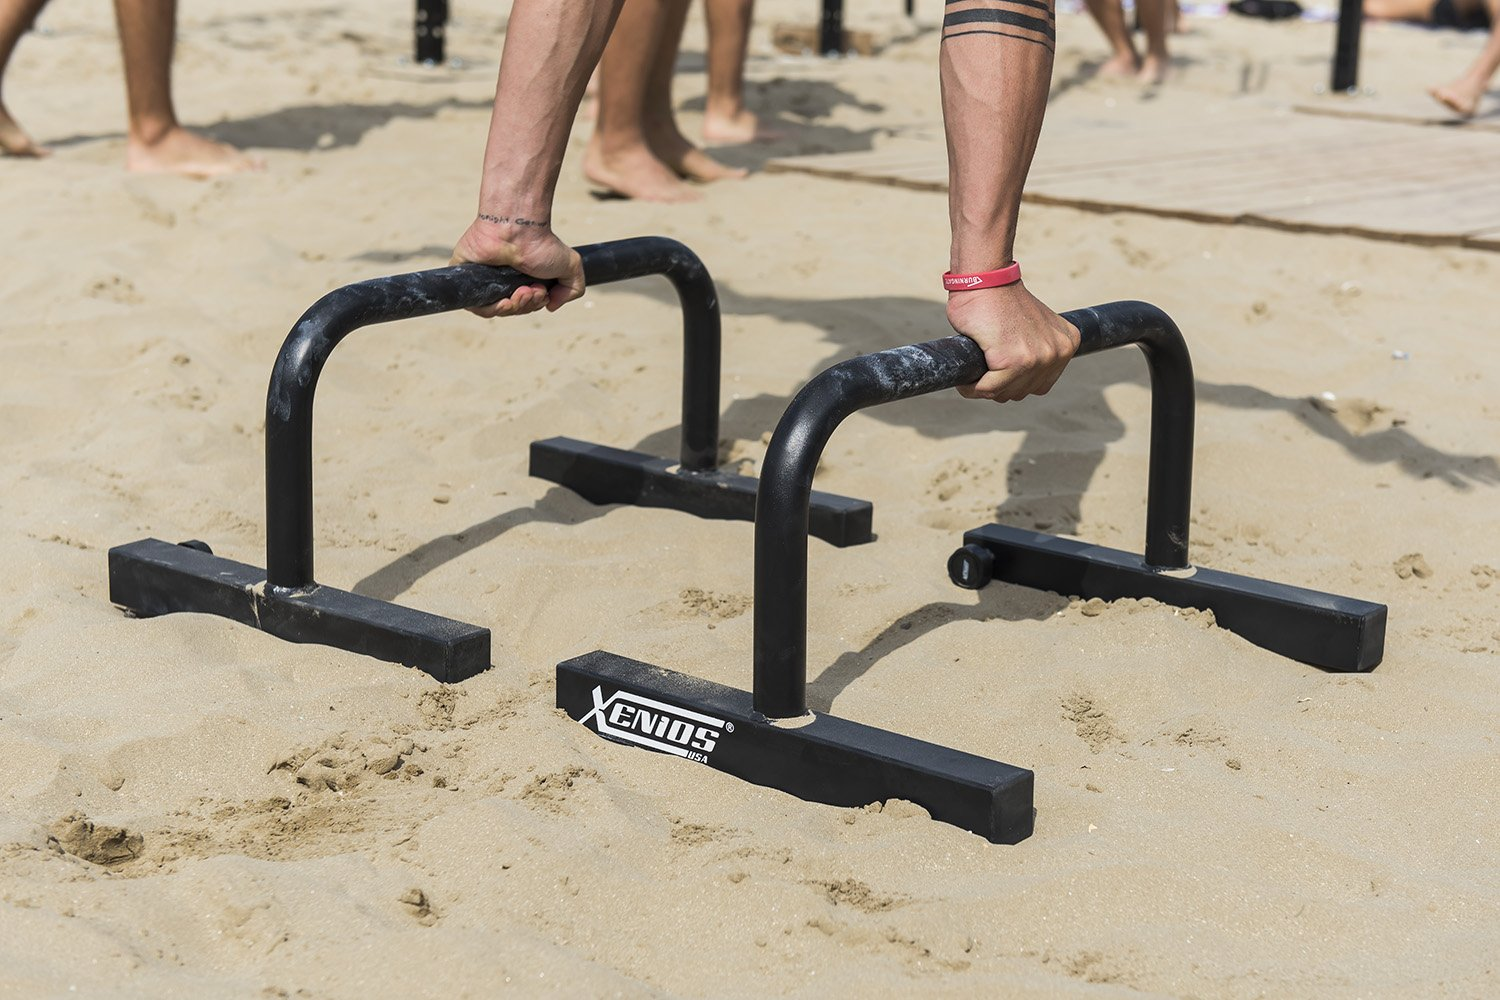 Gym Equipment Tips Article Image